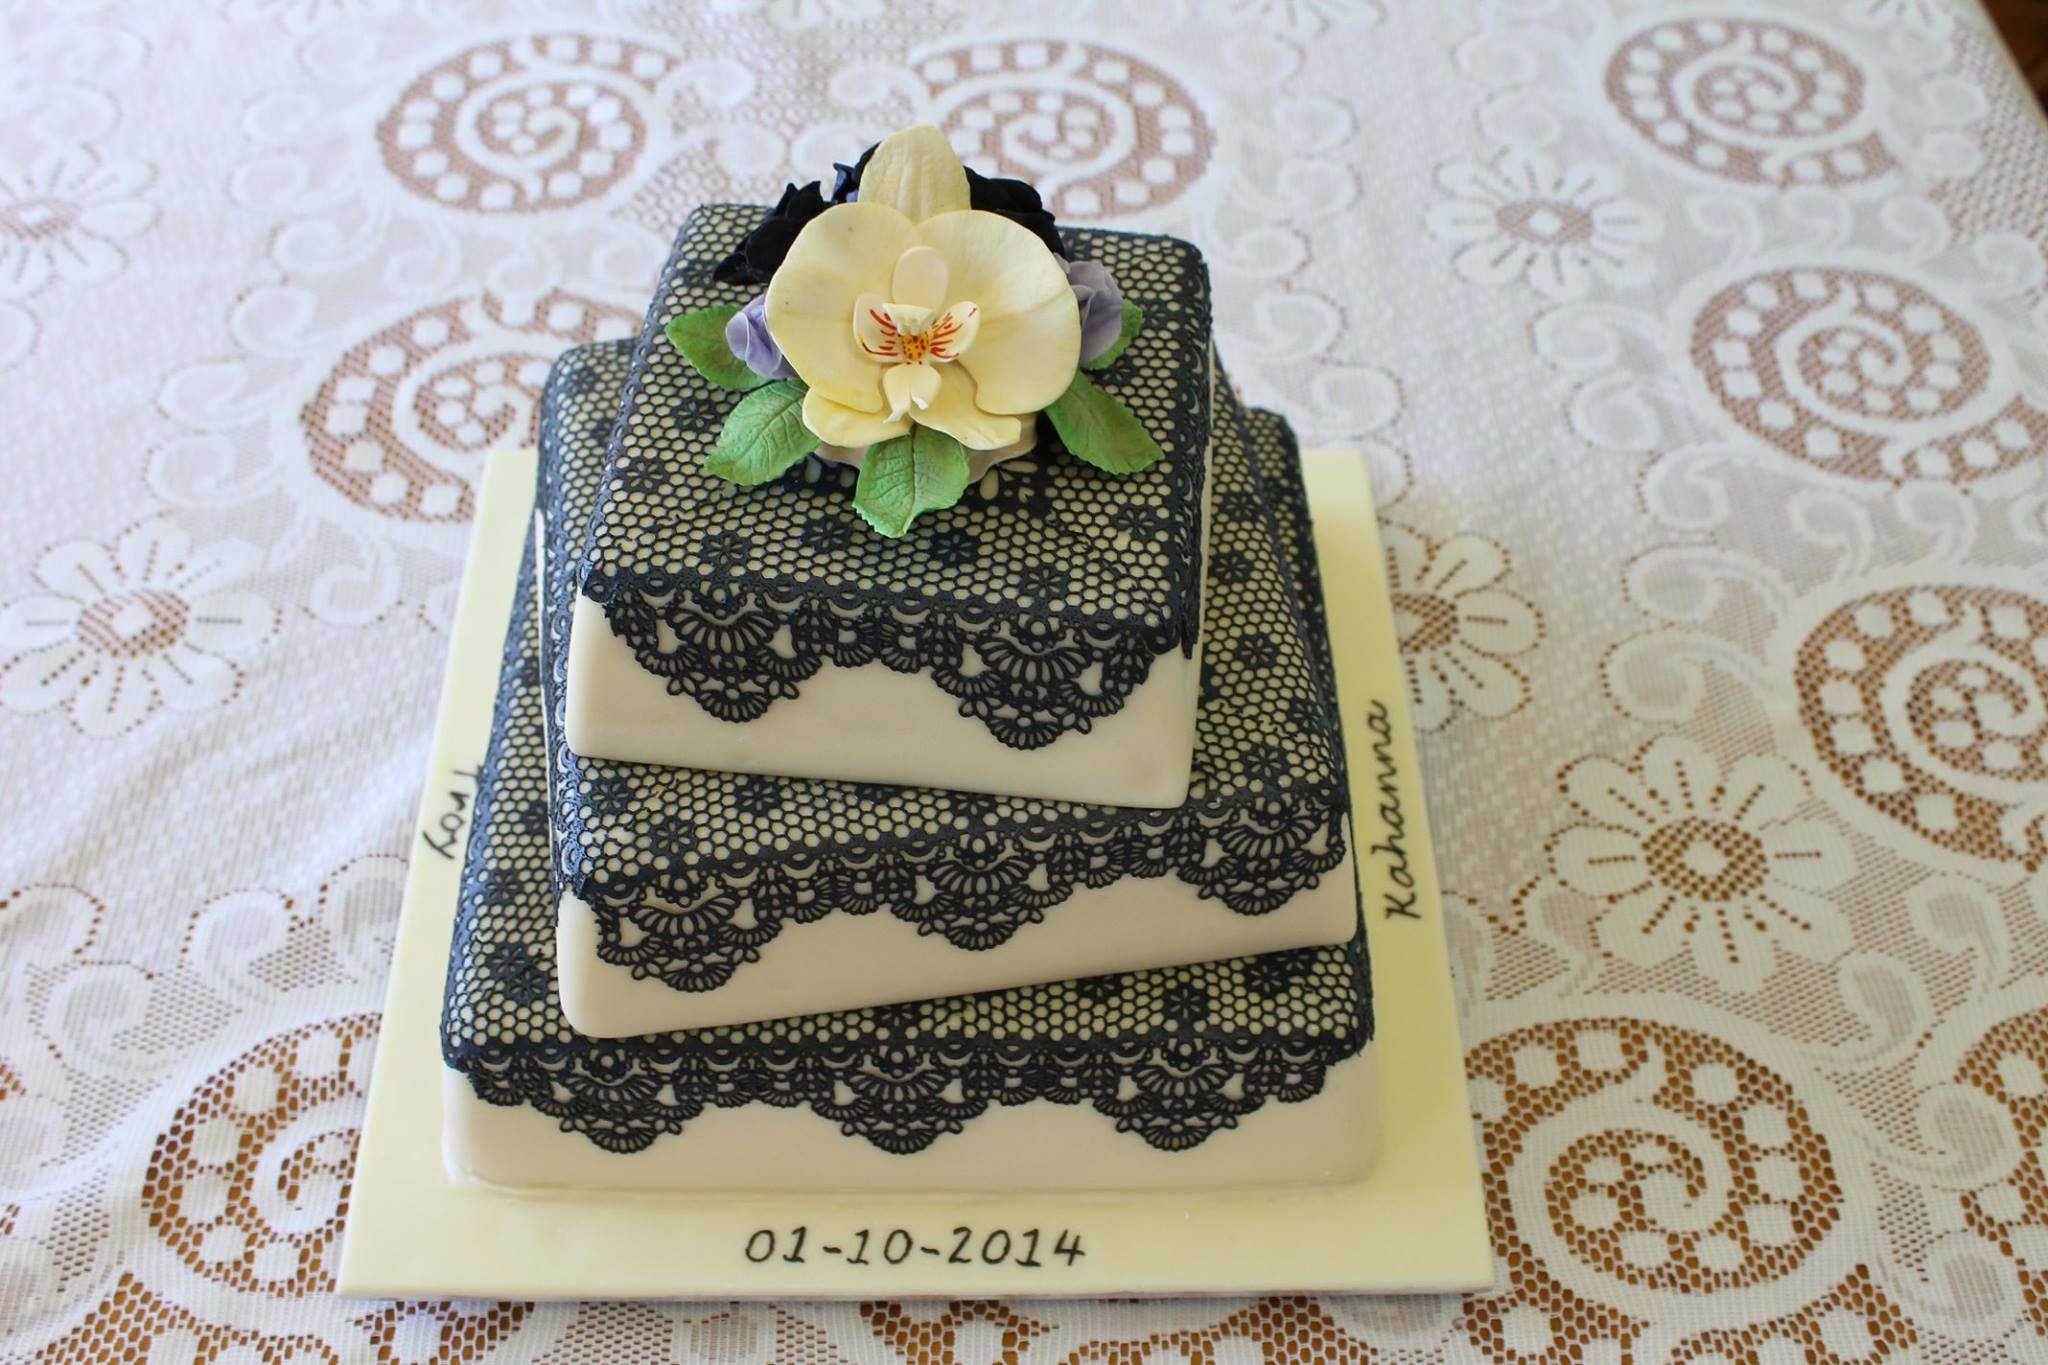 Malcom's Three Tier Lace Cake